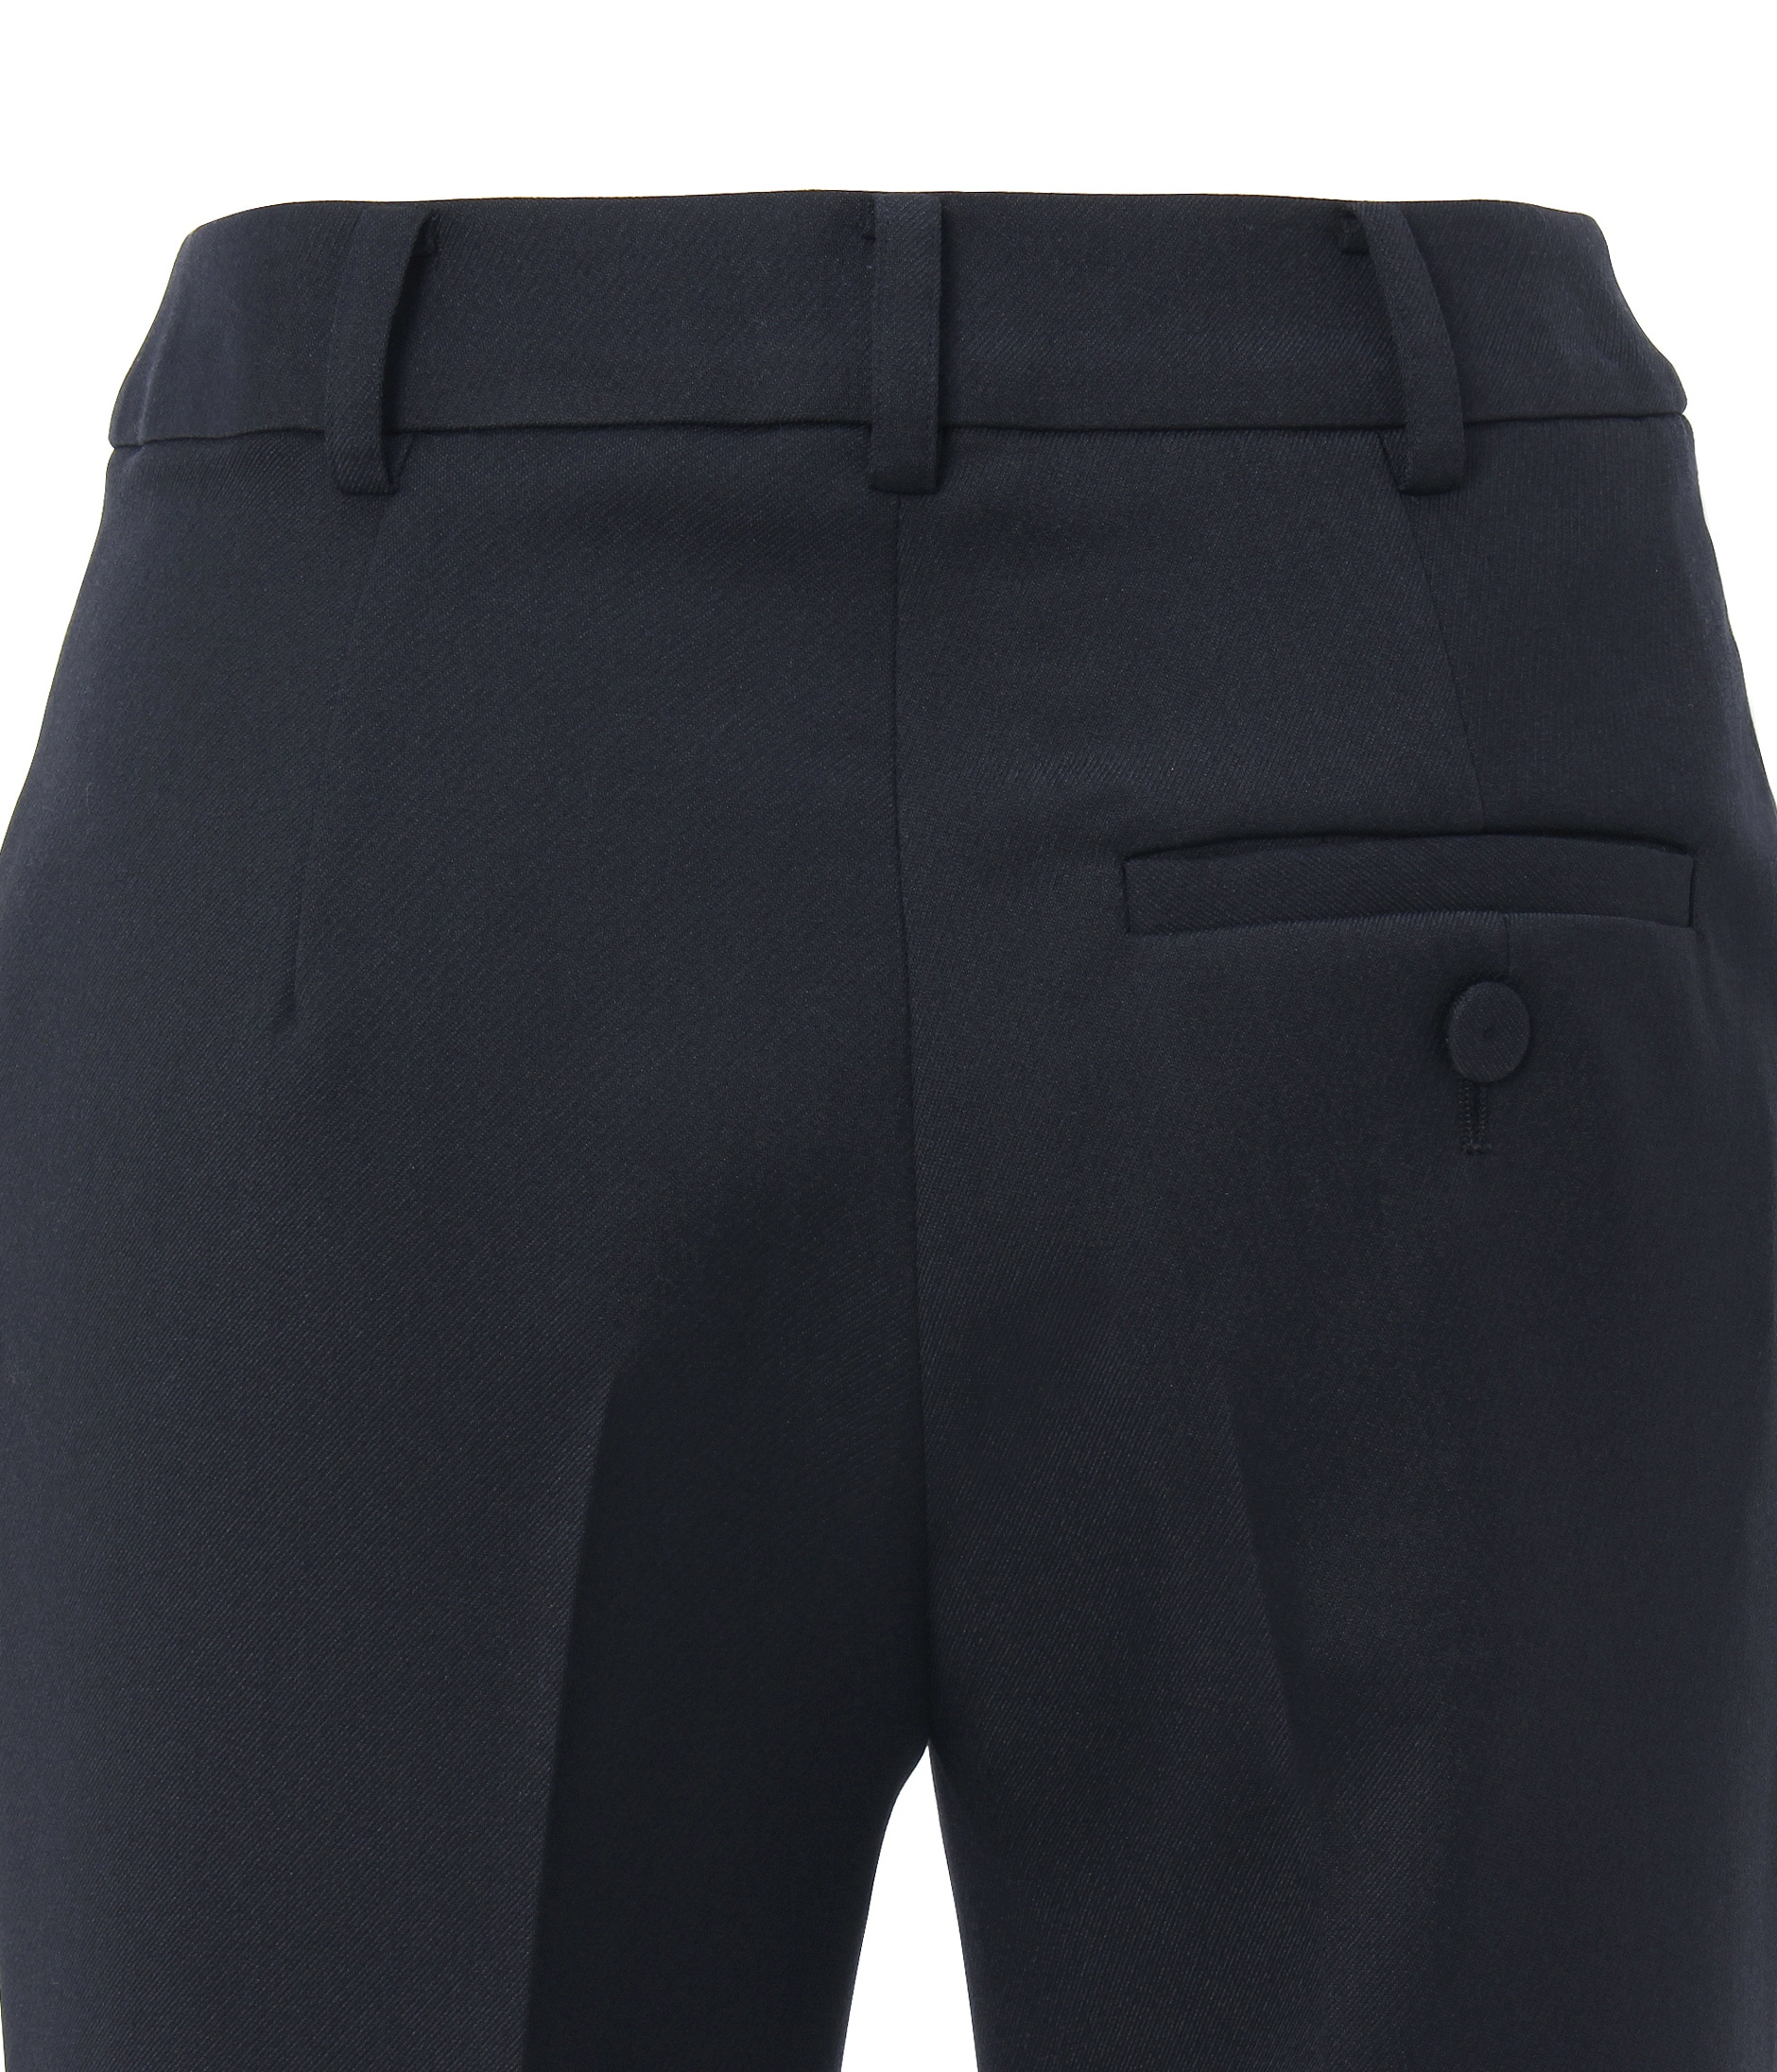 IONA TROUSERS 詳細画像 NAVY 7